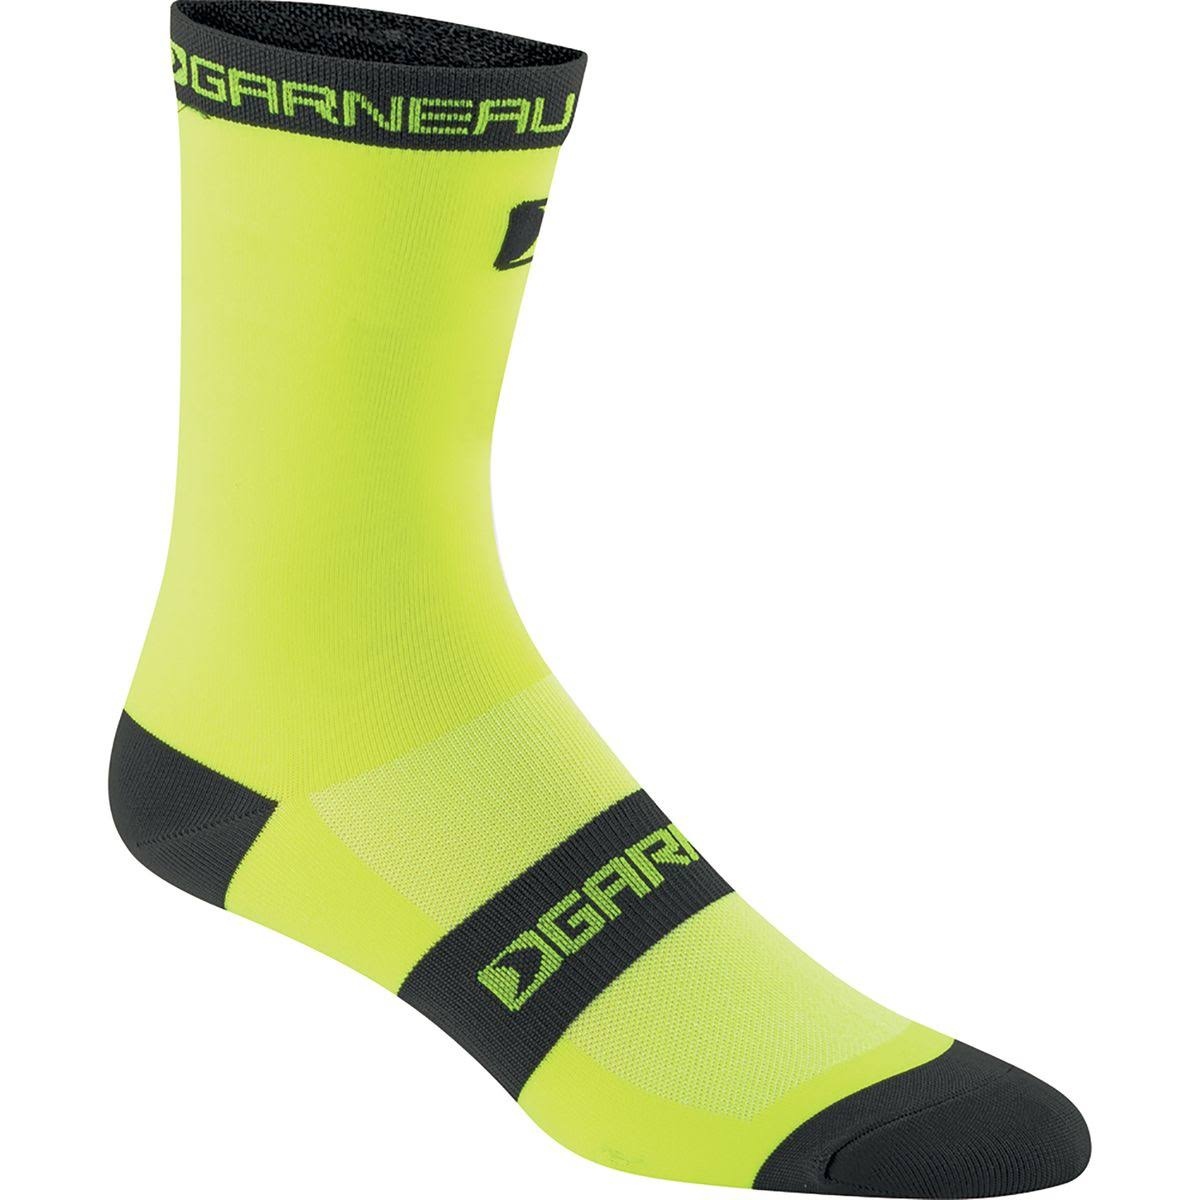 Louis Garneau Tuscan Long Socks - Yellow/Black, Large